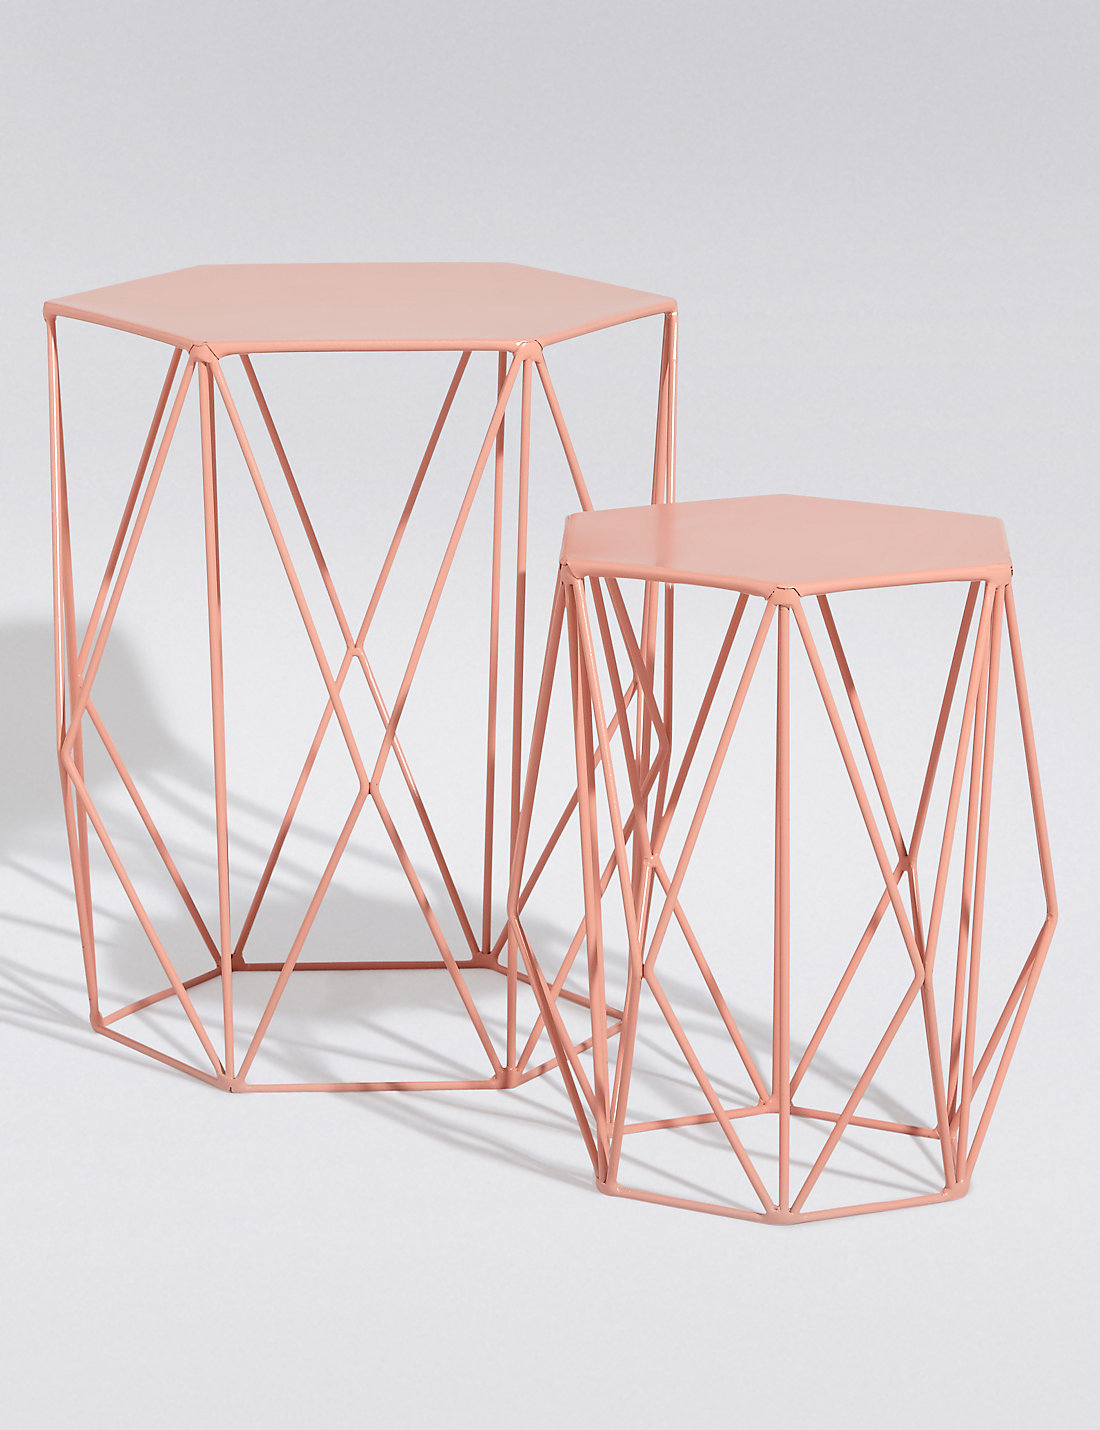 Coral nest of tables £79 currently out of stock*insert cry face emoji here.